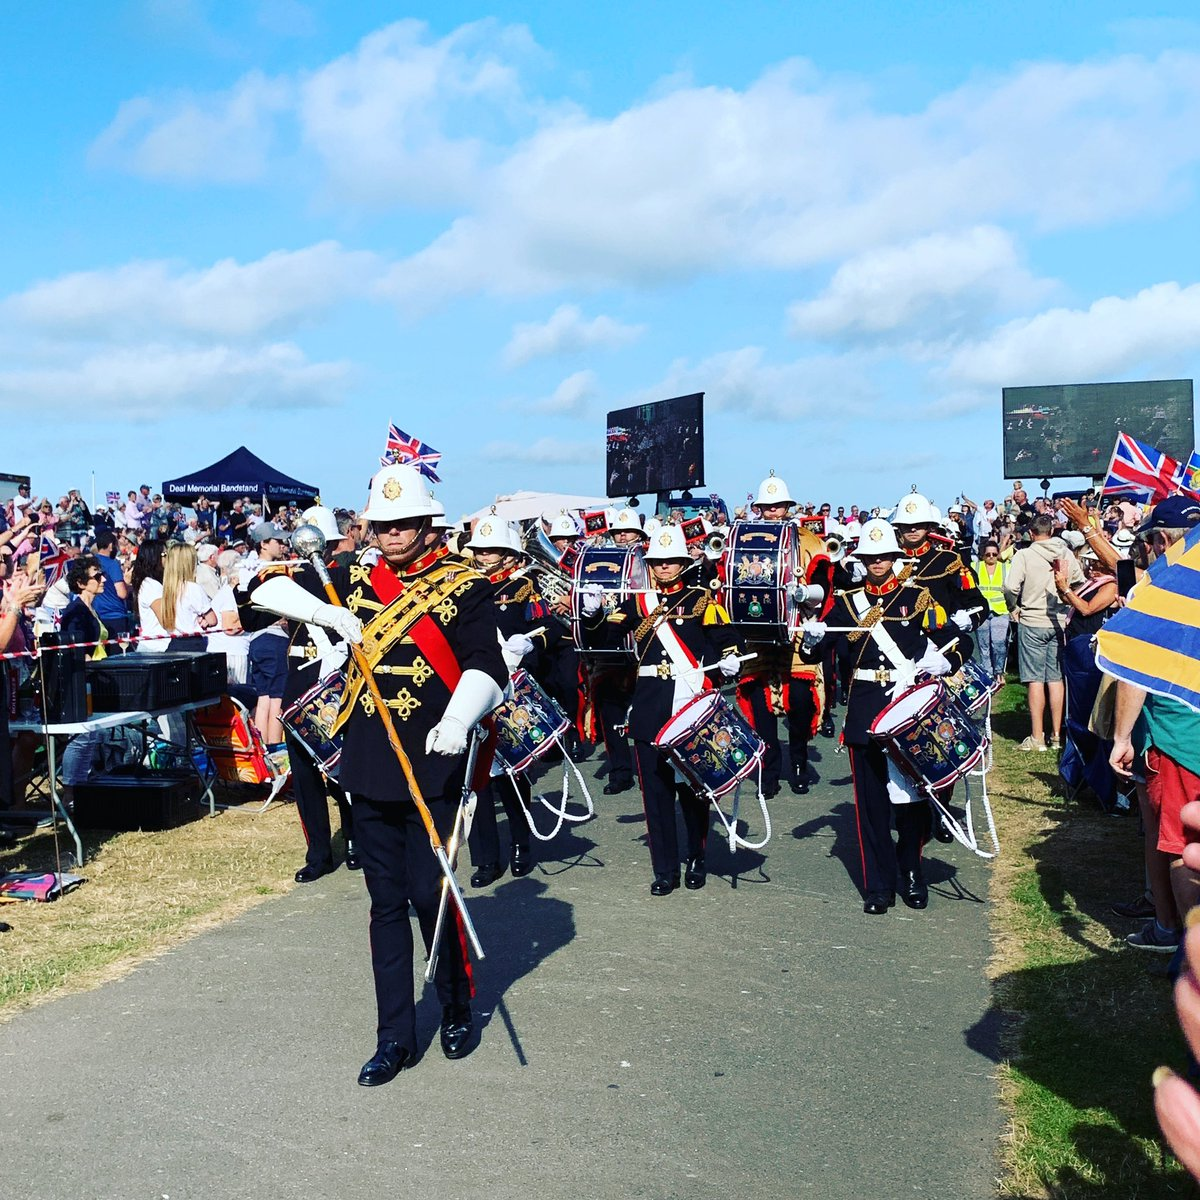 We hope you enjoyed today's Memorial Concert @RMBandService @DealBandstand - we had a fantastic afternoon #dealbandstand #wewillrememberthem <br>http://pic.twitter.com/nI2Mis6Gdx